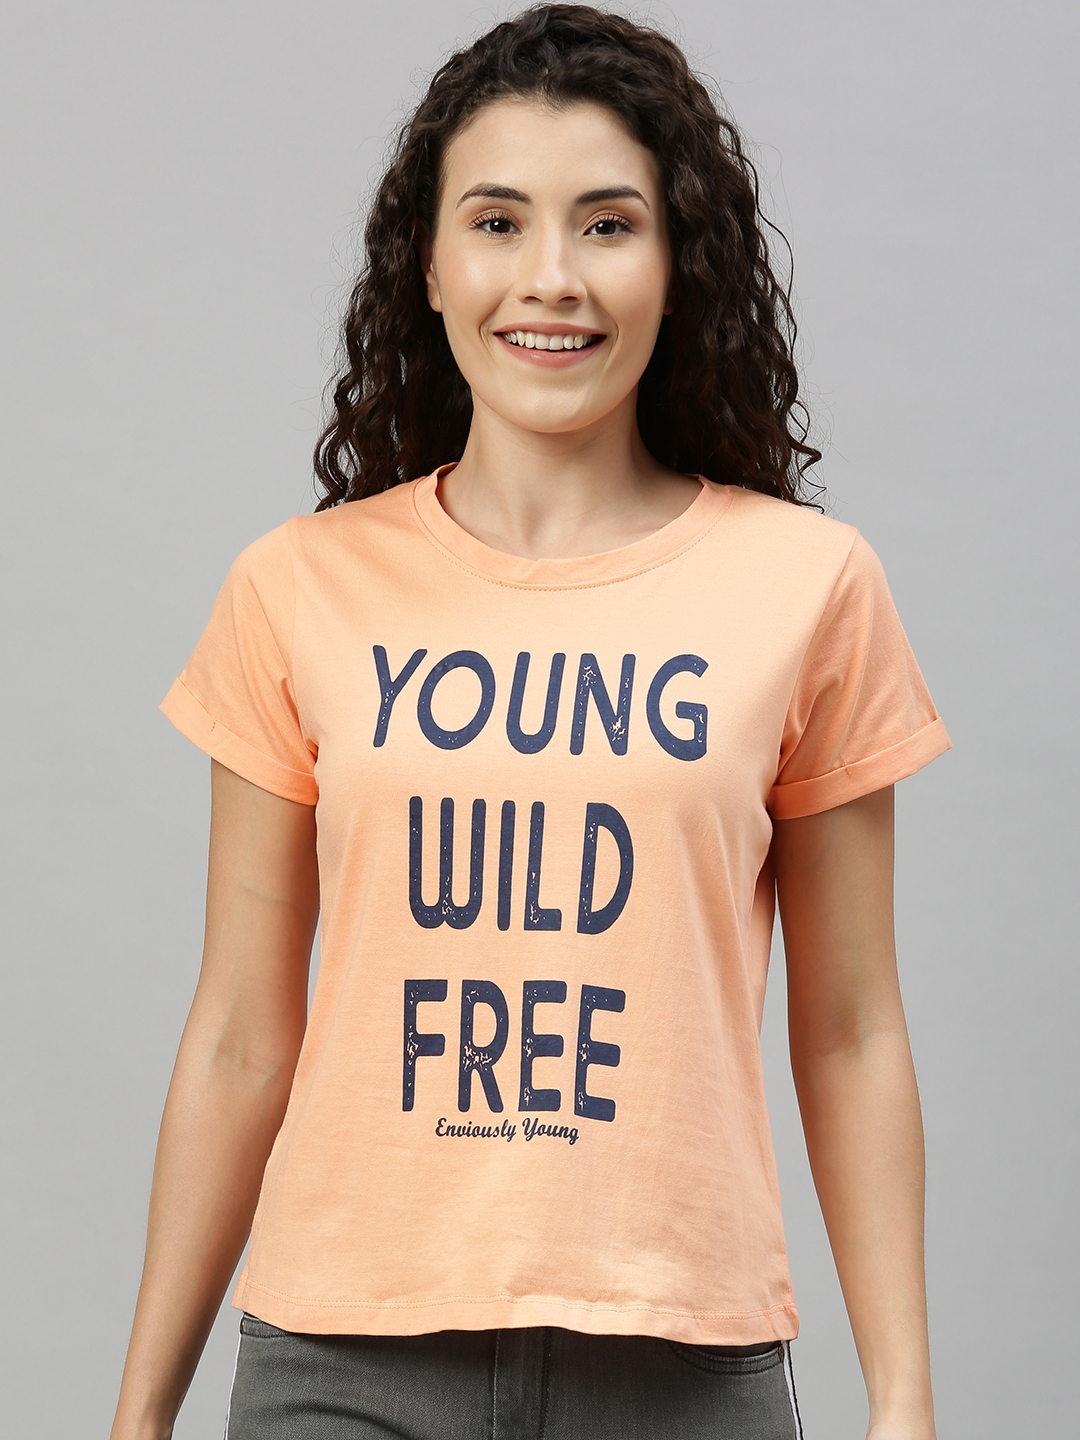 Enviously Young Women Peach Coloured Slim Fit Printed Round Neck T shirt